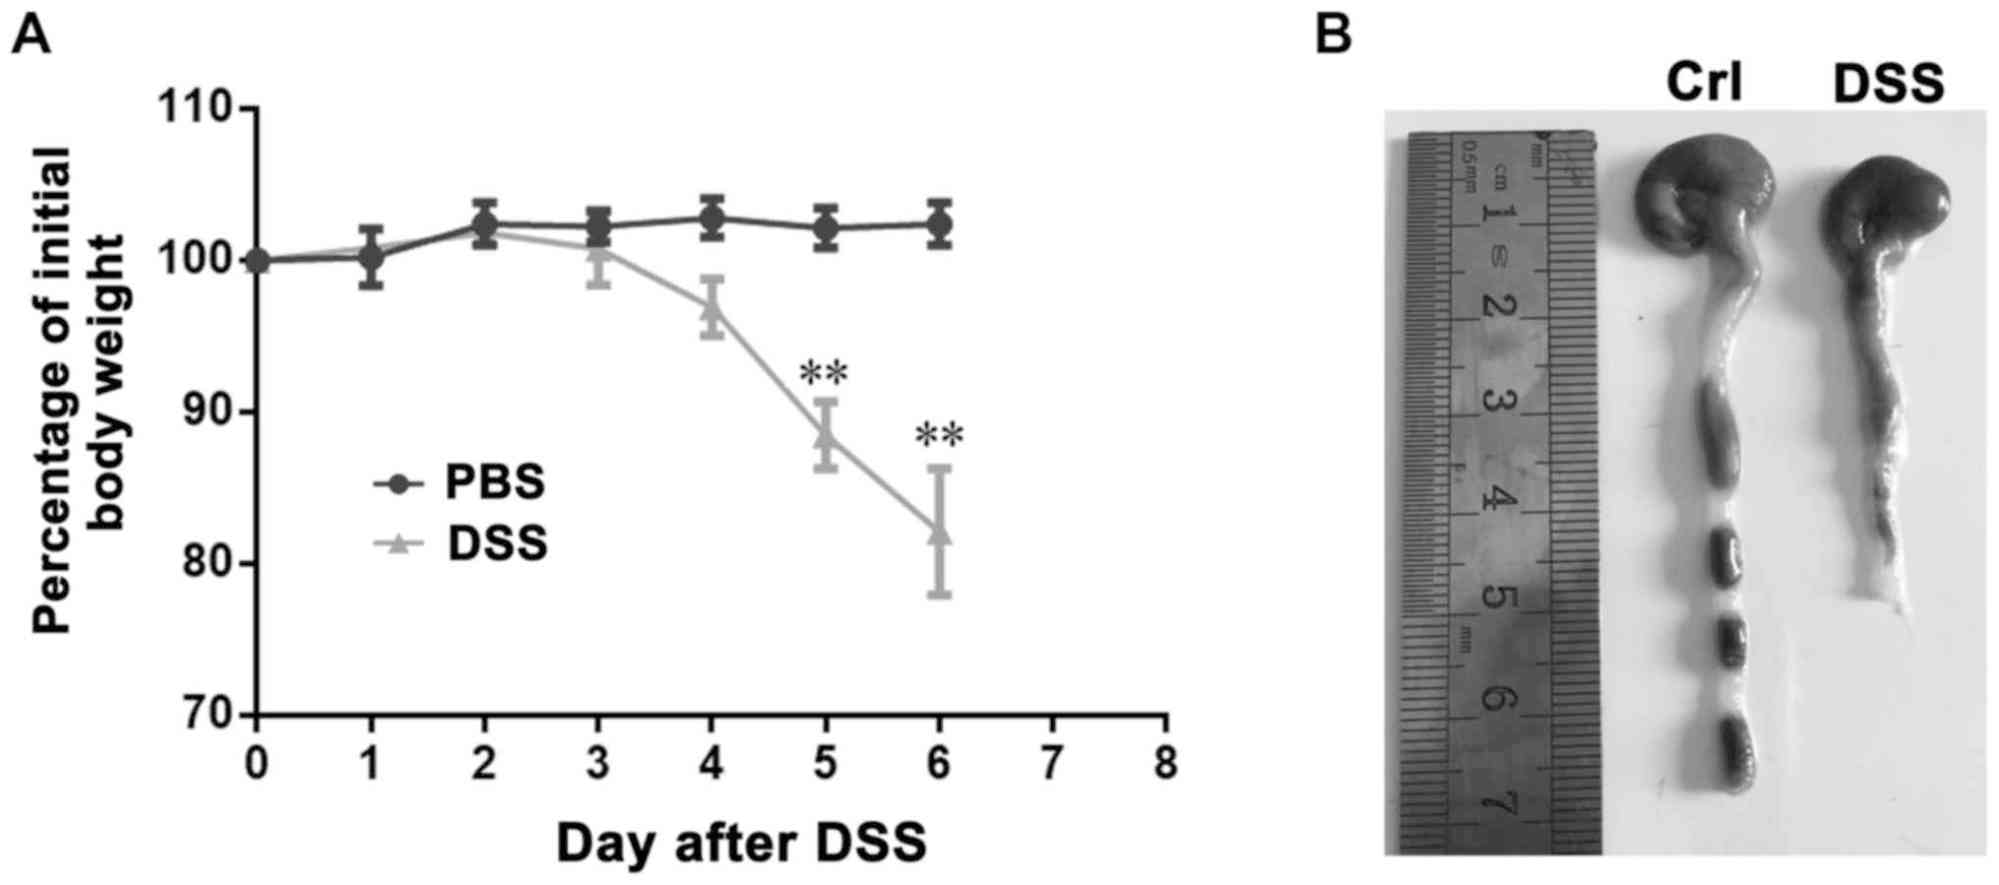 hight resolution of dss induced colitis model a mice were administered 5 dss in the drinking fluid for 6 days and weighed every day b the colon was excised between the